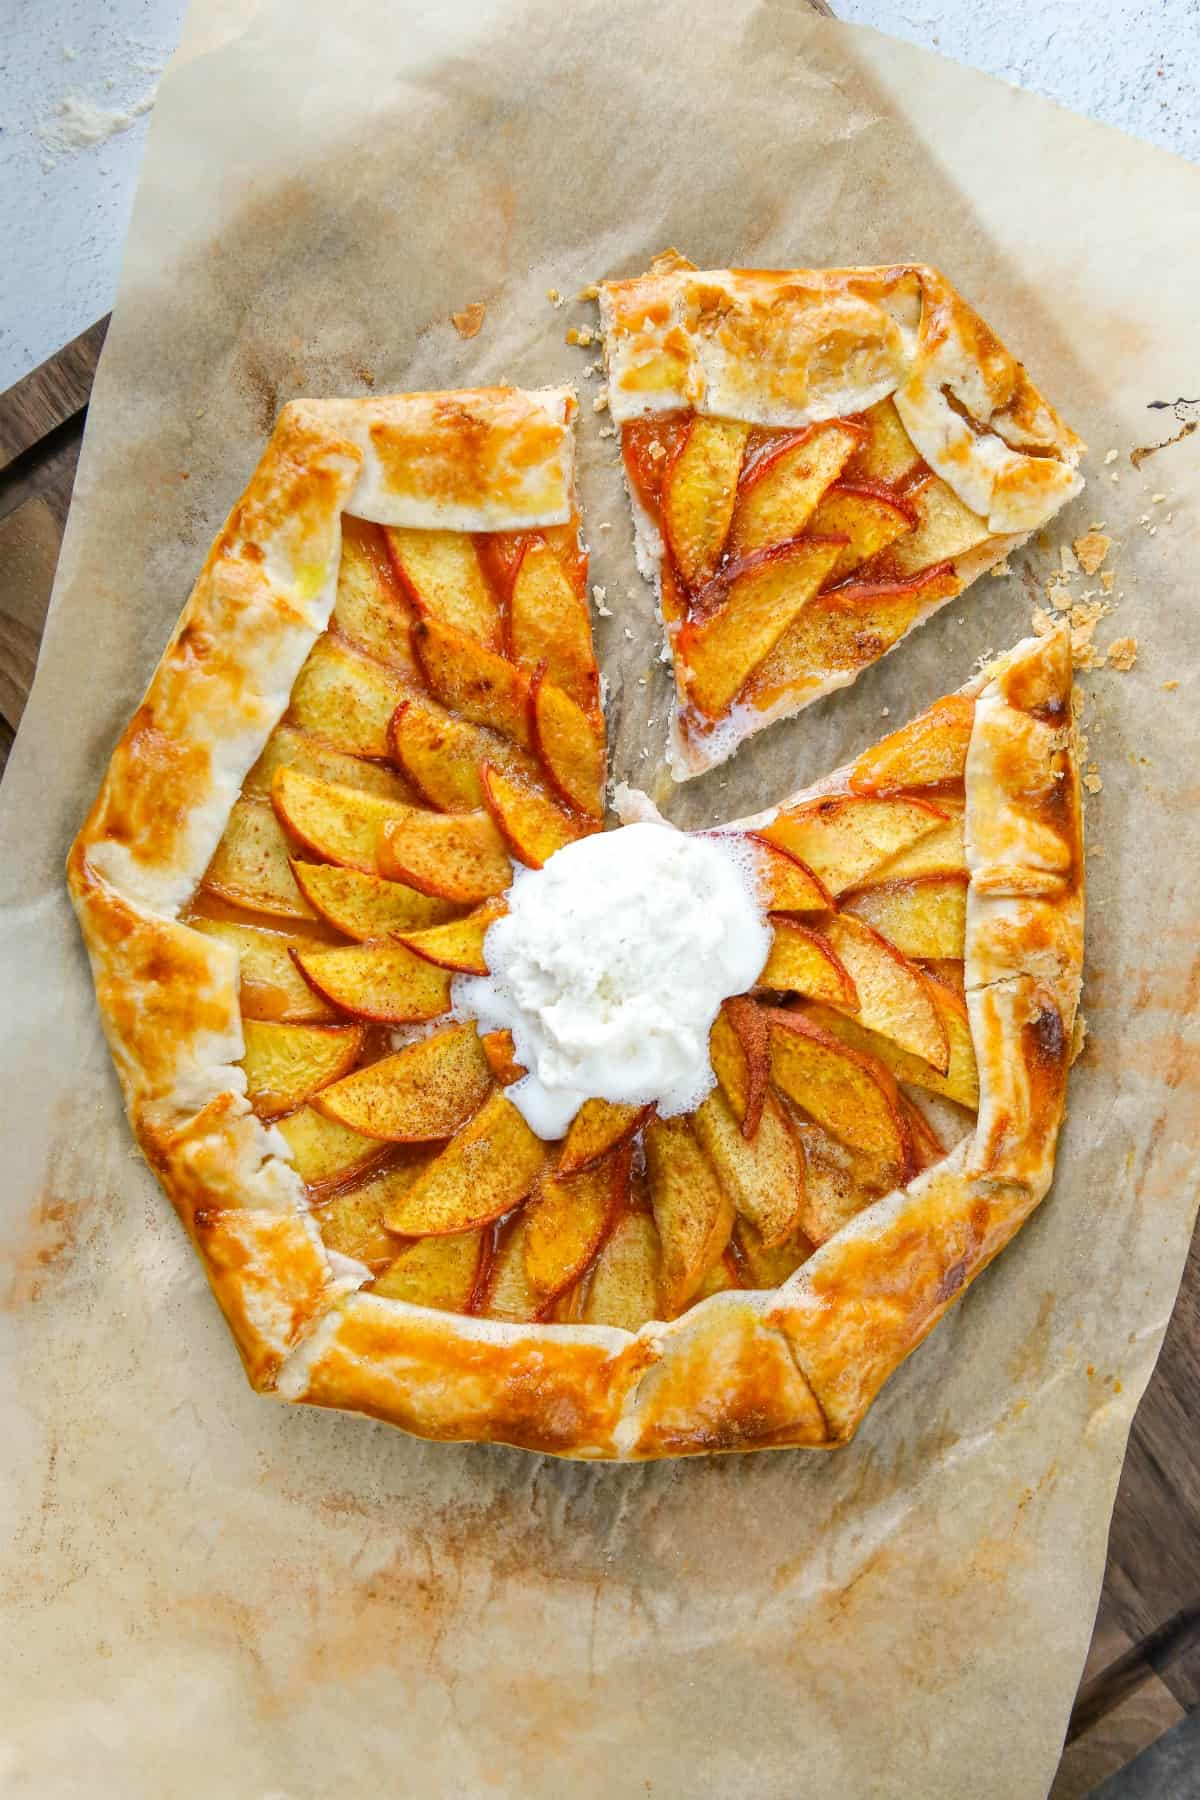 Peach galette with one slice cut and topped with ice cream.